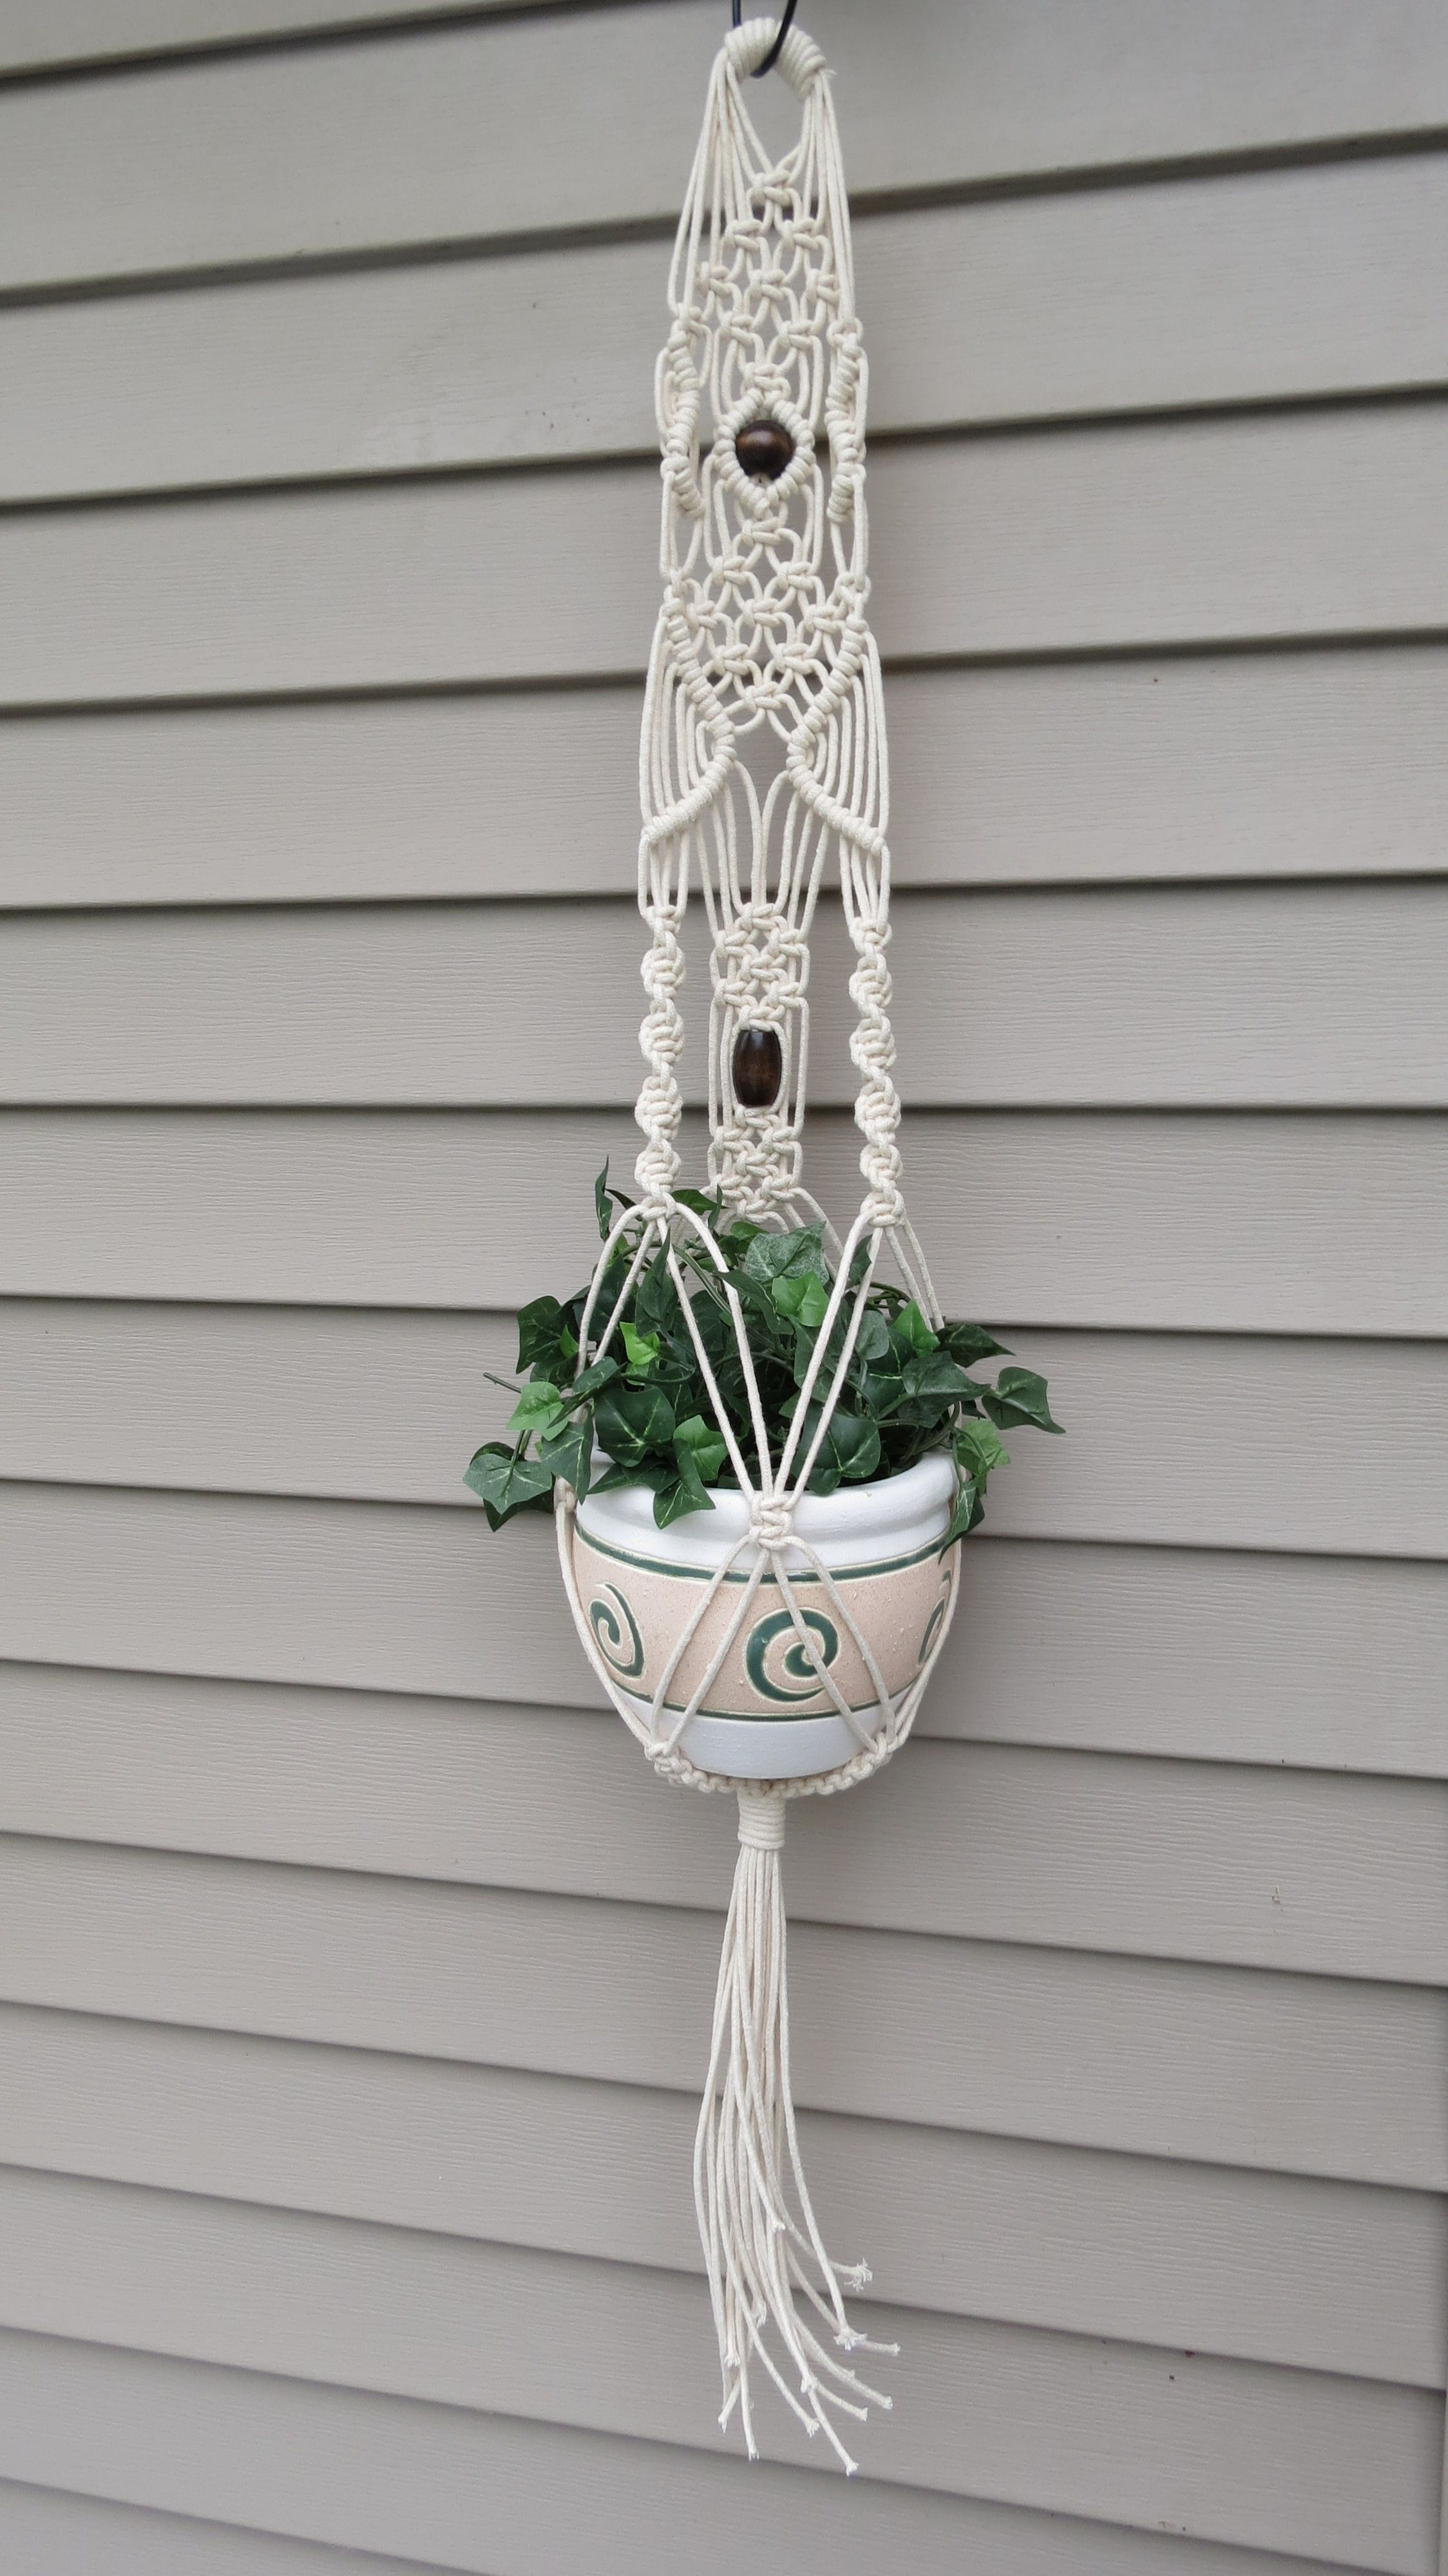 Pin By Penny Johns On Diy Ideas Macrame Plant Hanger